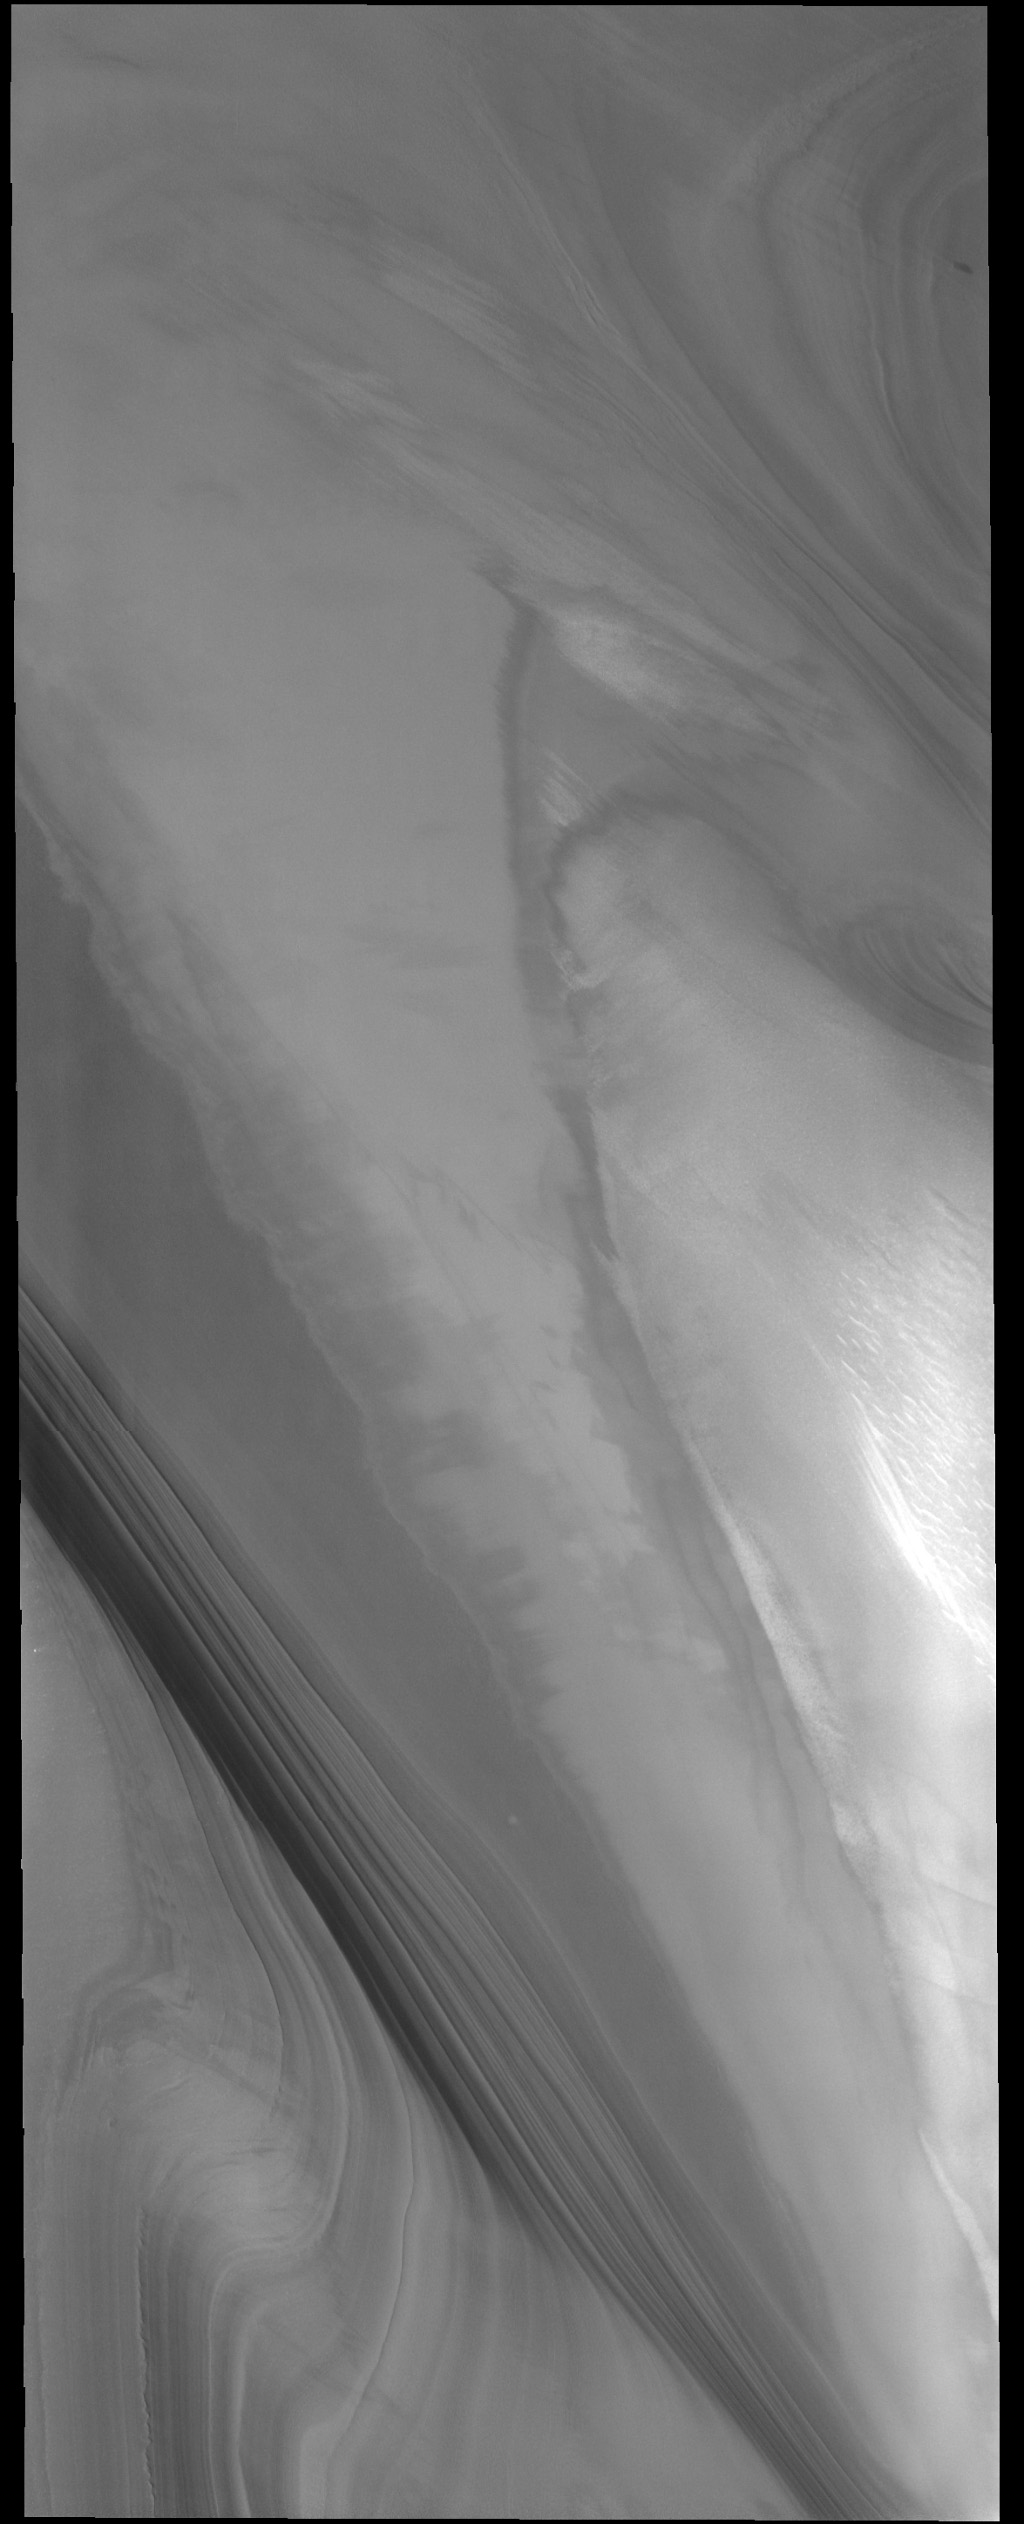 This image captured by NASA's 2001 Mars Odyssey spacecraft very clearly shows the layering that is found in both polar caps. This image is of the north polar cap.